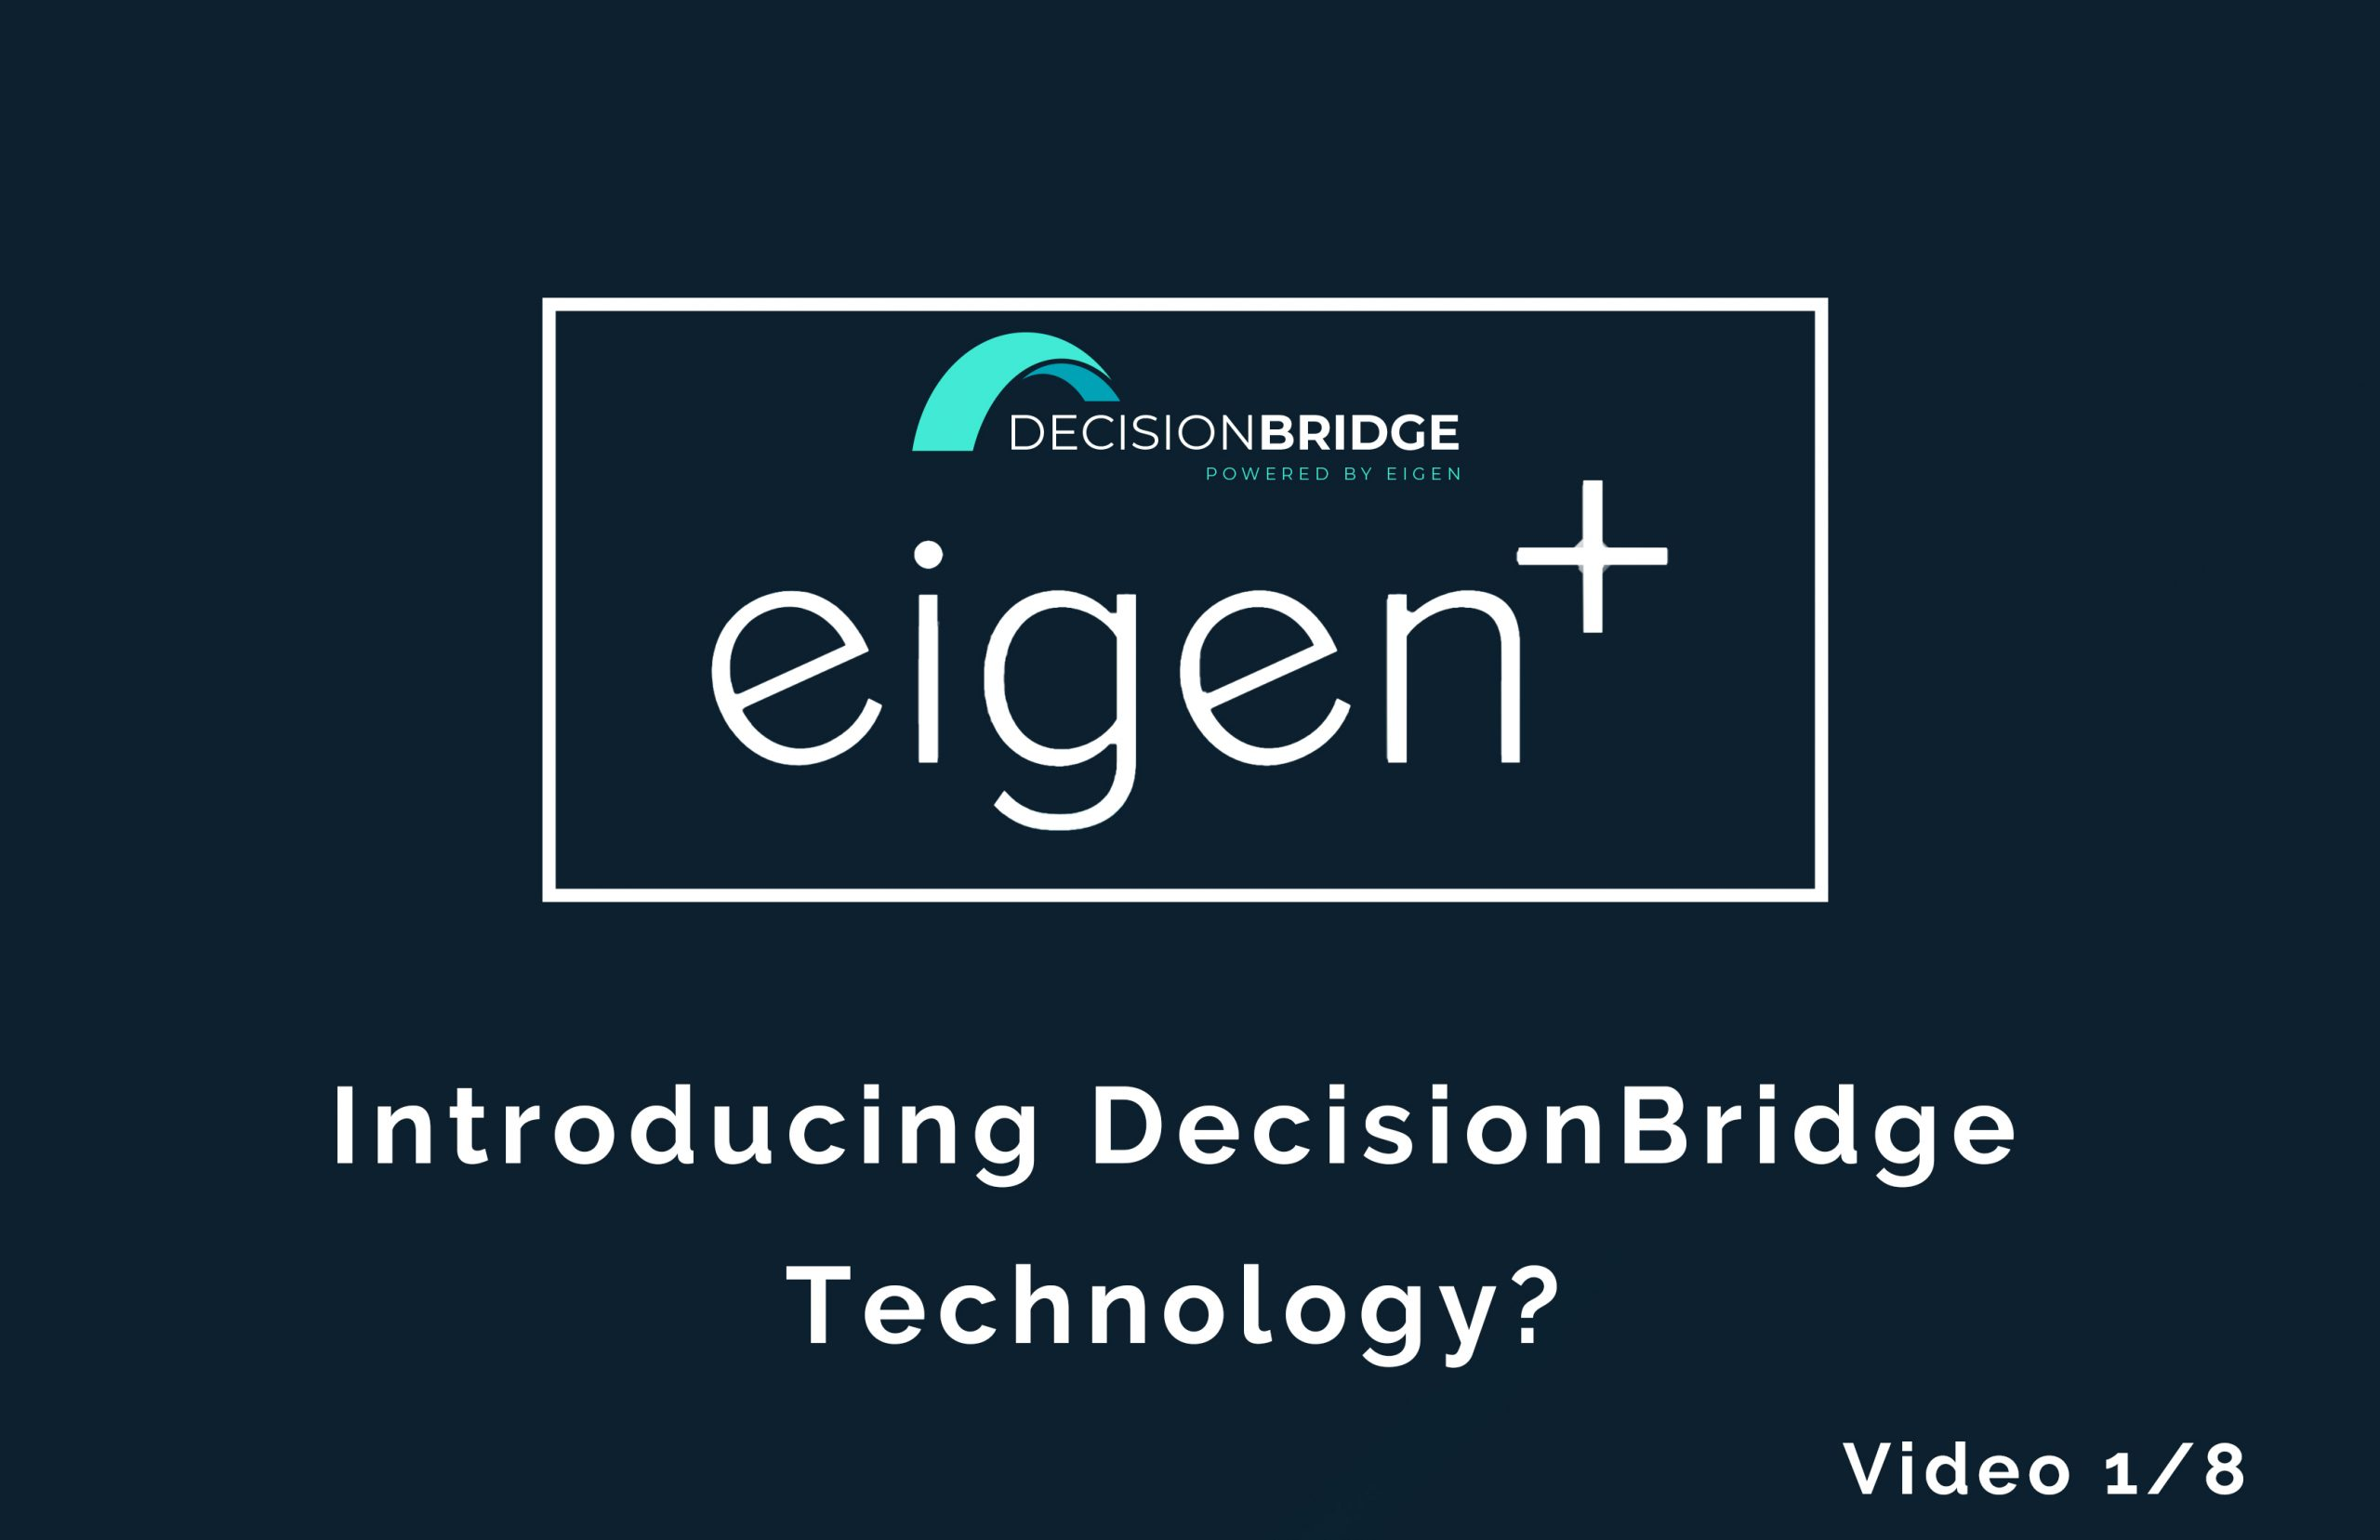 Decision Bridge Technology Powered by Eigen